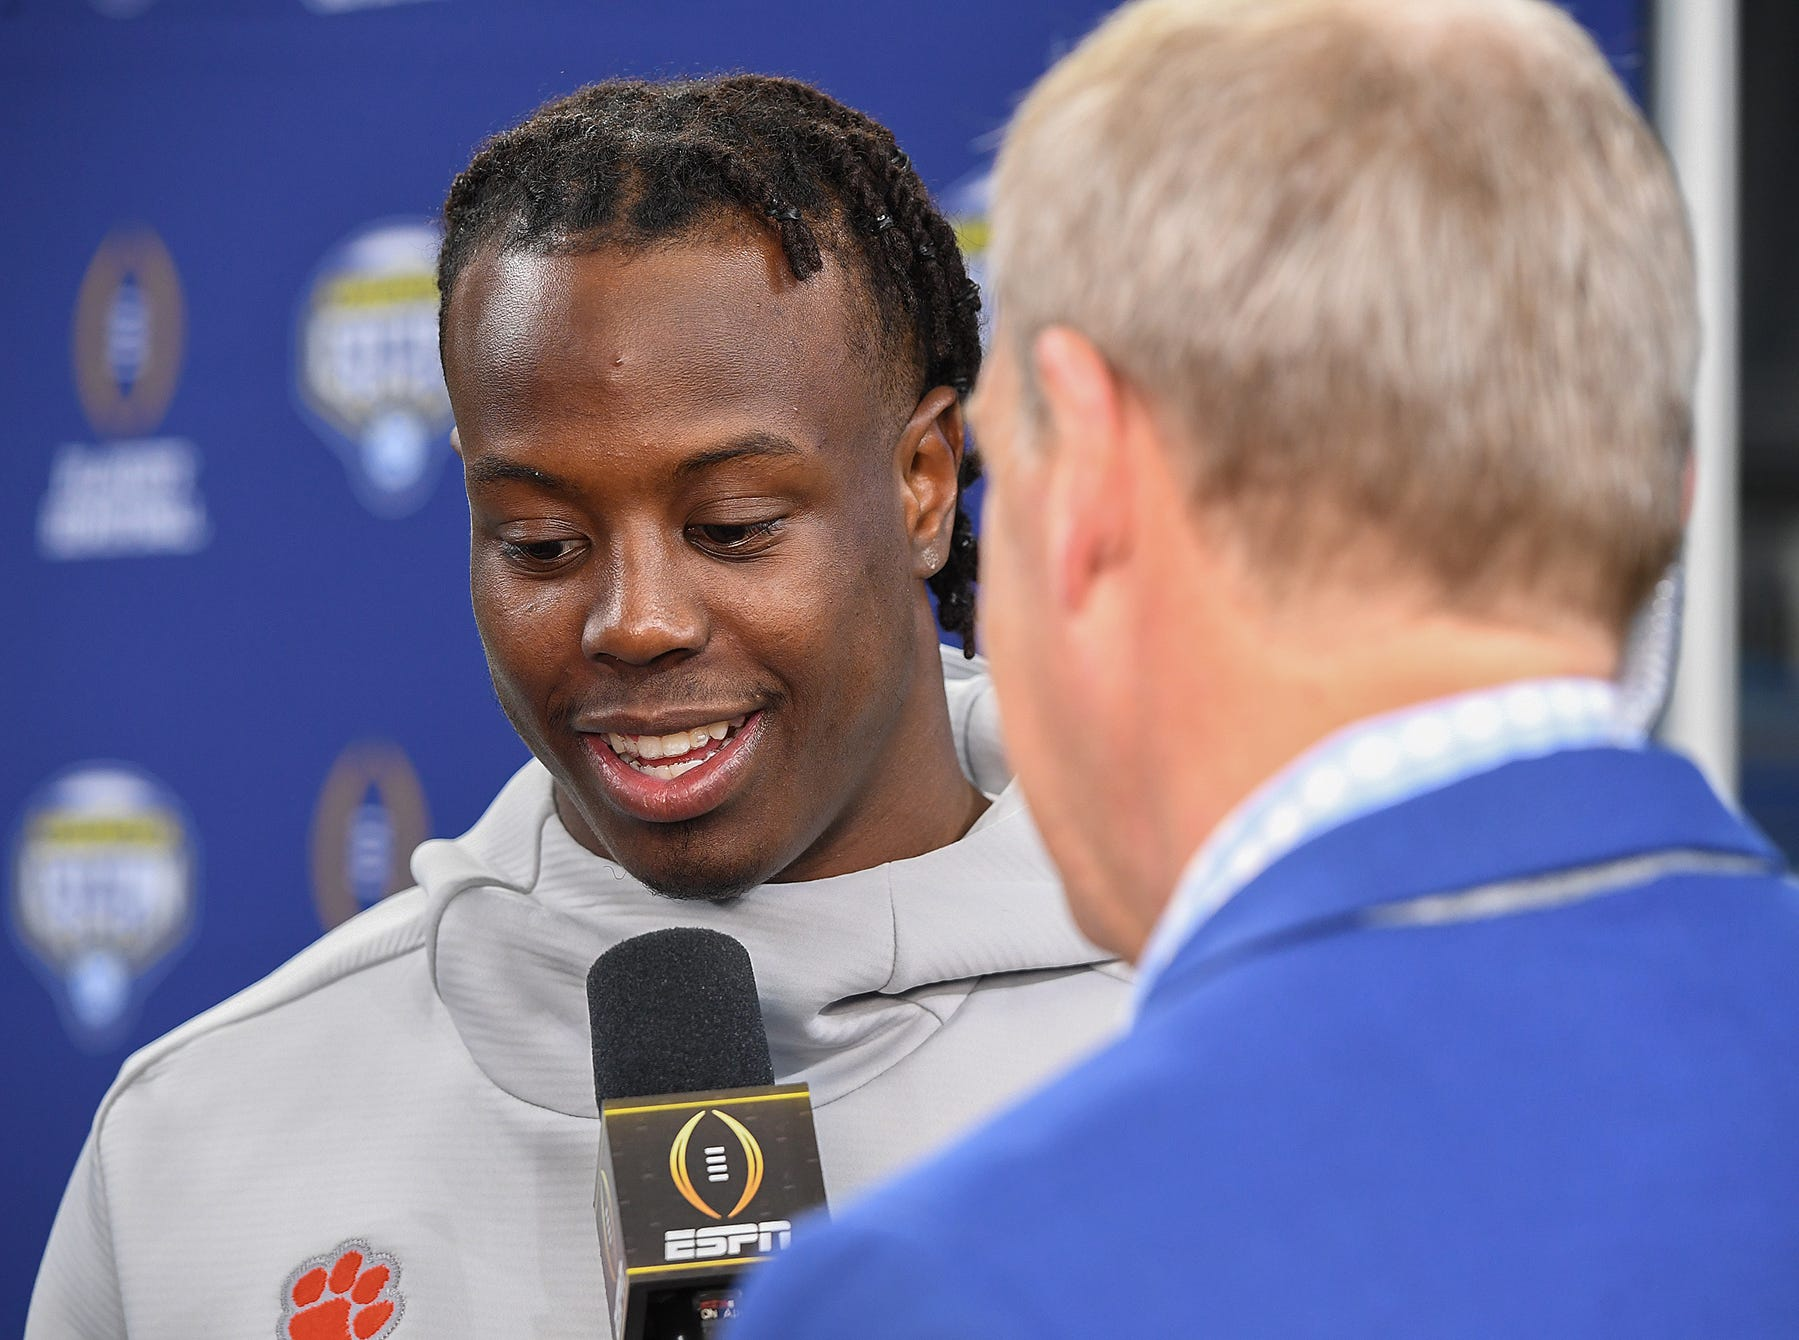 Clemson running back Travis Etienne (9) is interviewed by ESPN during the Tigers Cotton Bowl media day at AT&T Stadium in Arlington, TX Thursday, December 27, 2018.